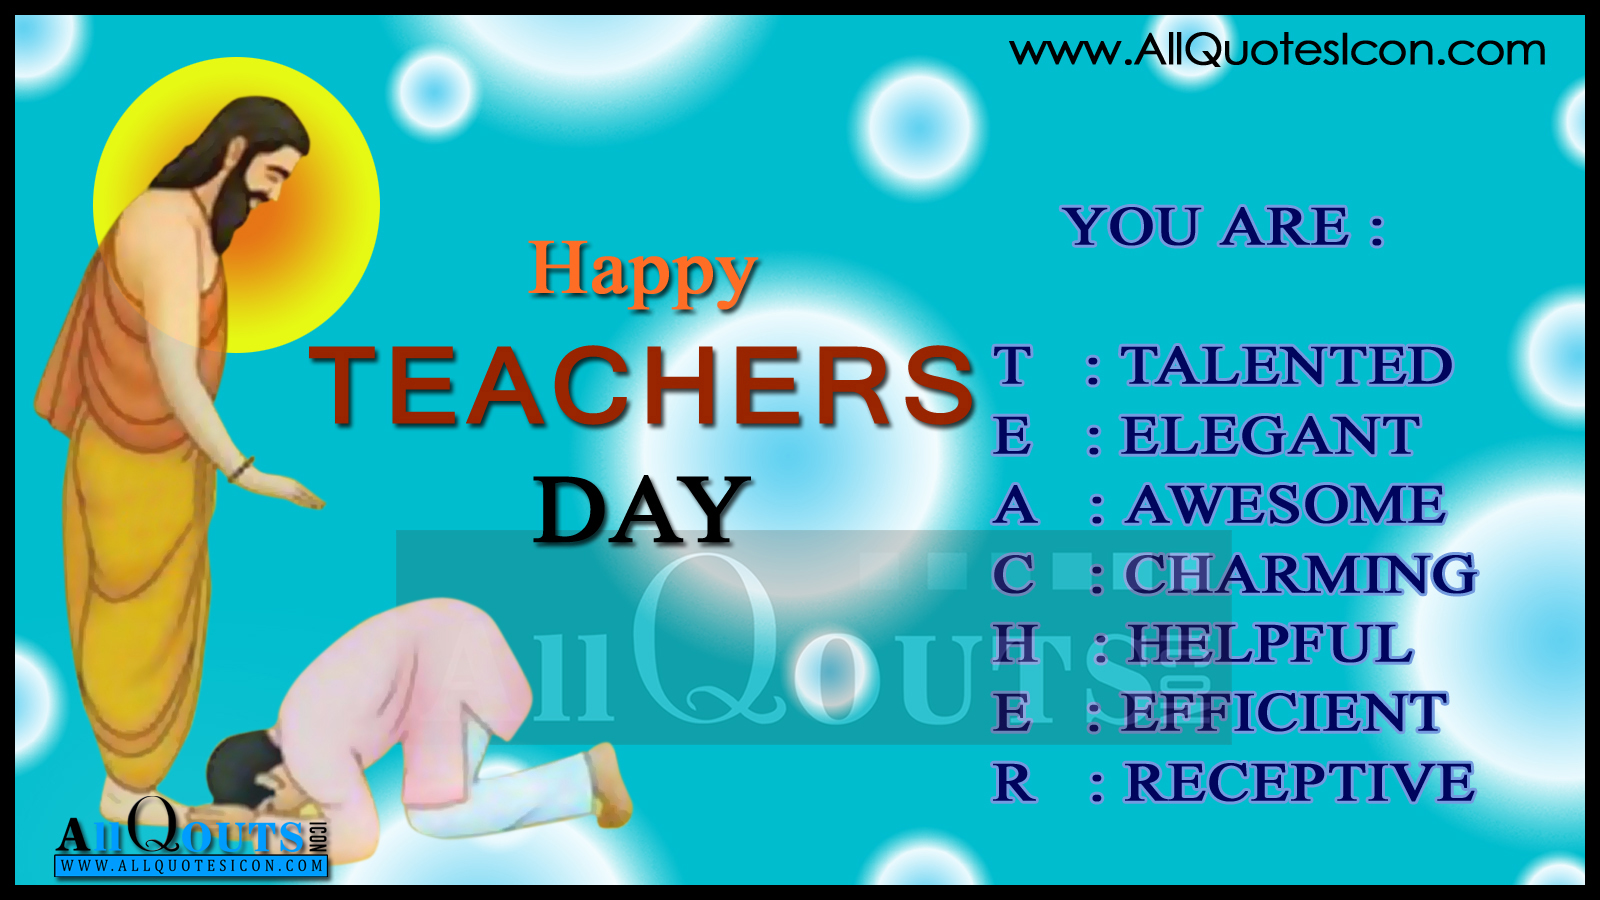 Teachers day 2015 happy teachers day sms messages wishes speech happy teachers day teachers day 2015 teachers day speech teachers day quotes altavistaventures Choice Image